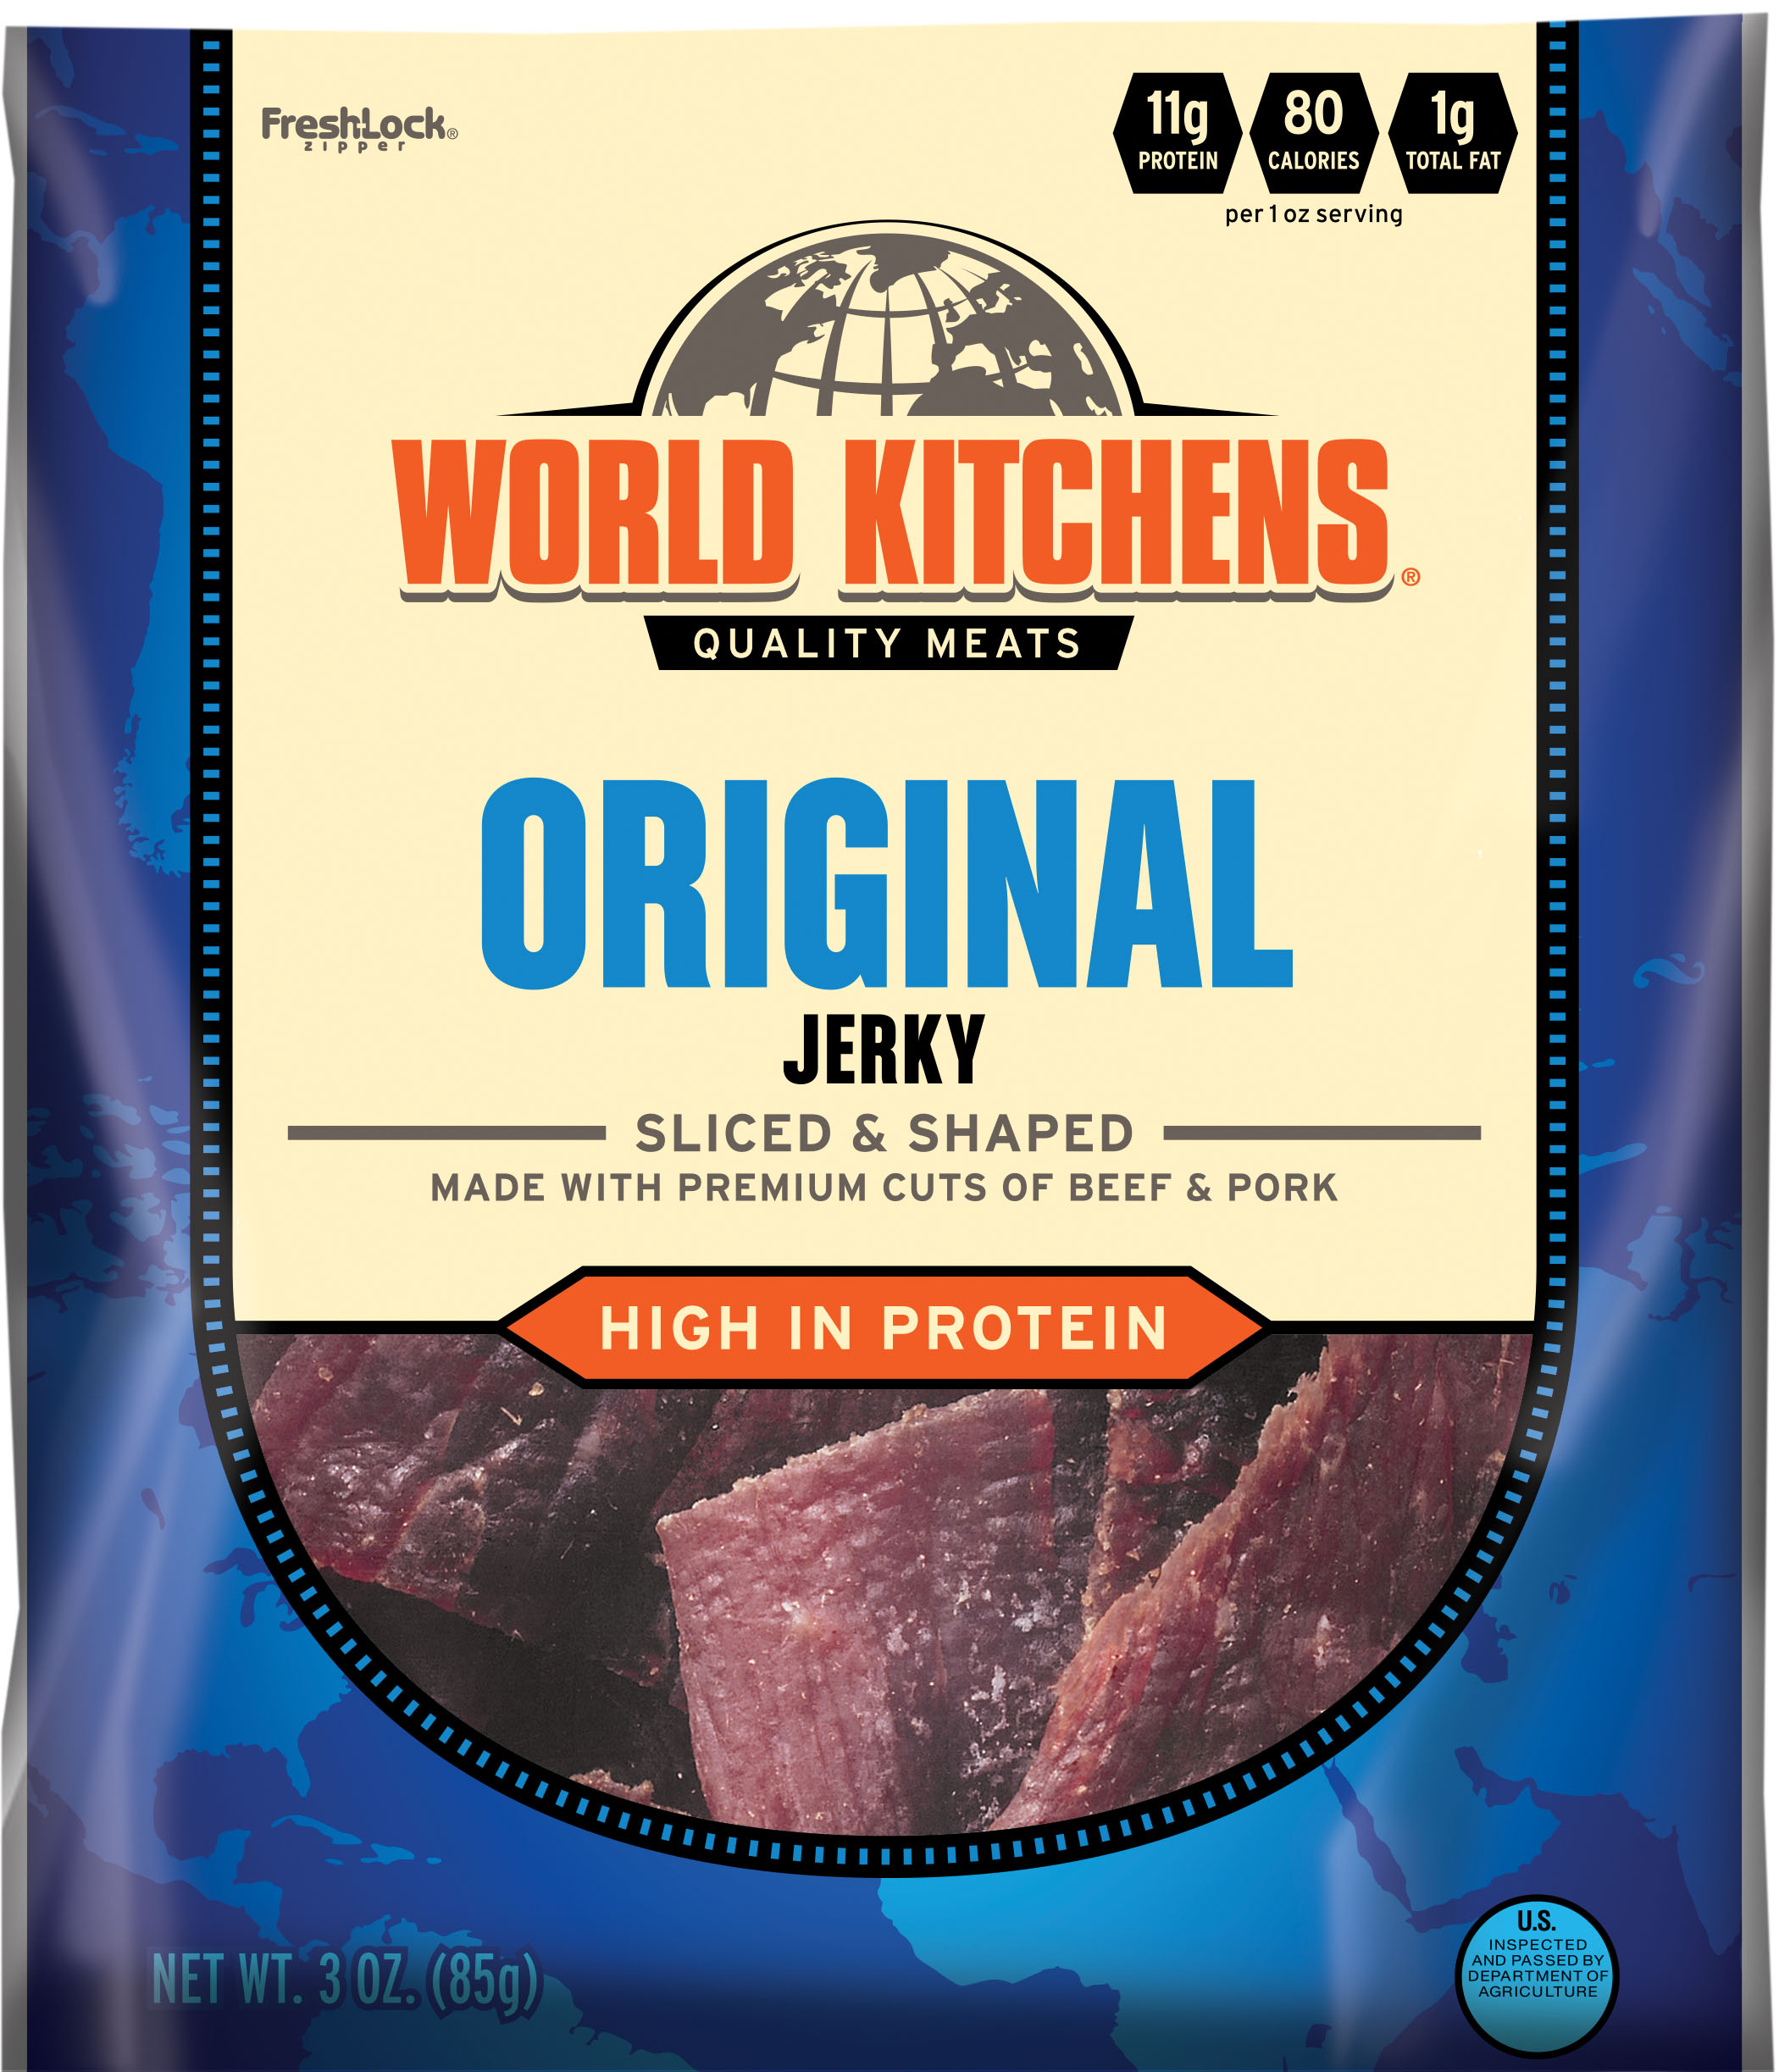 World Kitchens Original Jerky